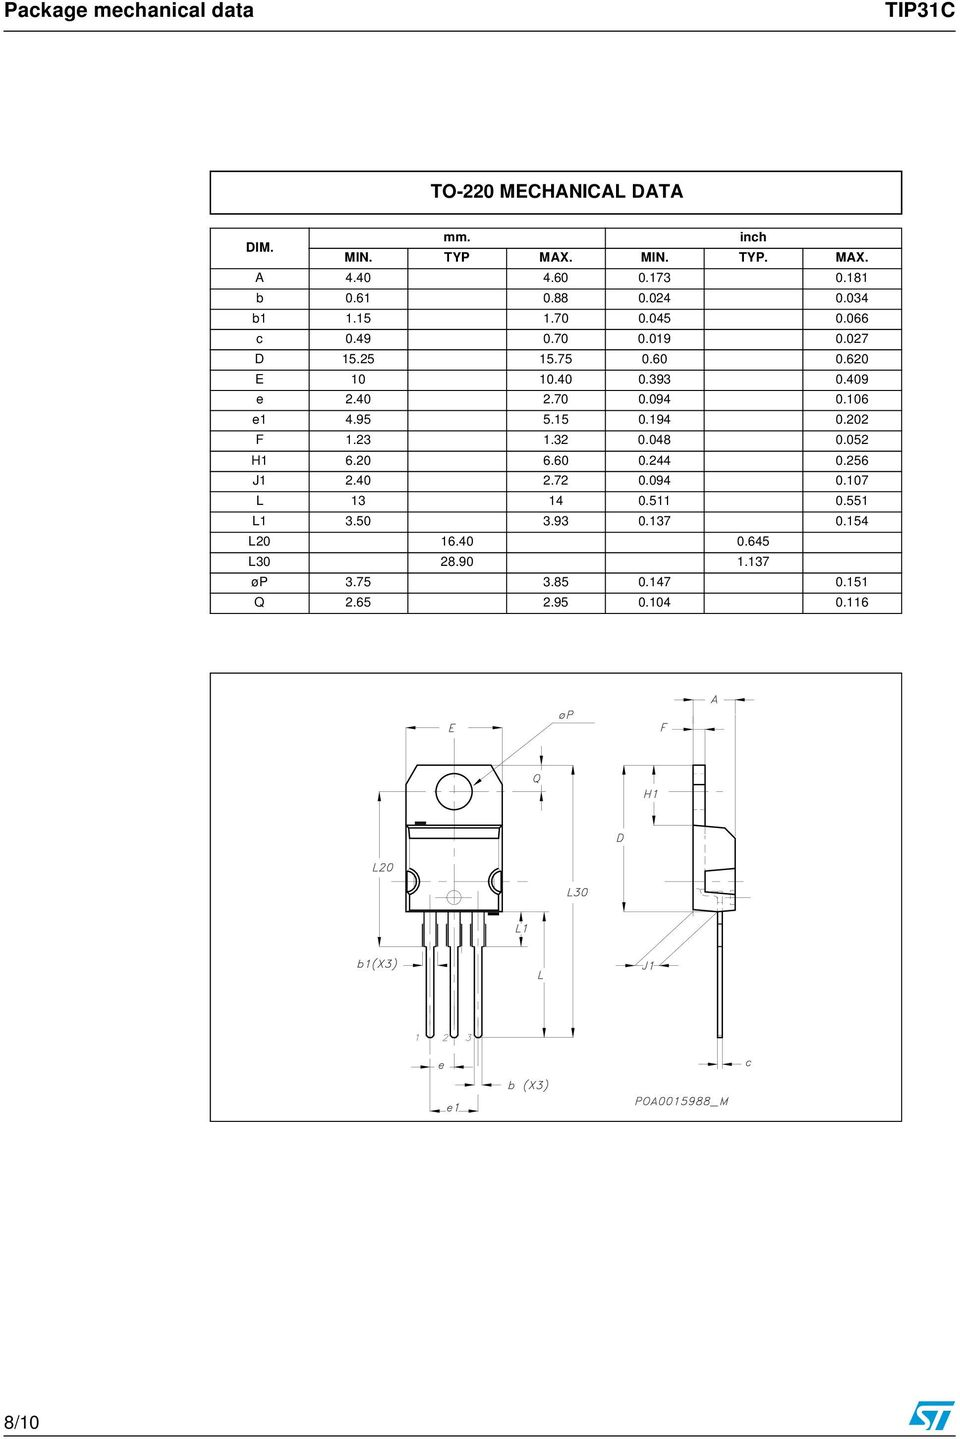 Tip31c Power Transistors General Features Applications Dc Motor Controller Using Transistor Tip31 409 E 240 270 0094 0106 E1 495 515 0194 0202 F 123 132 0048 0052